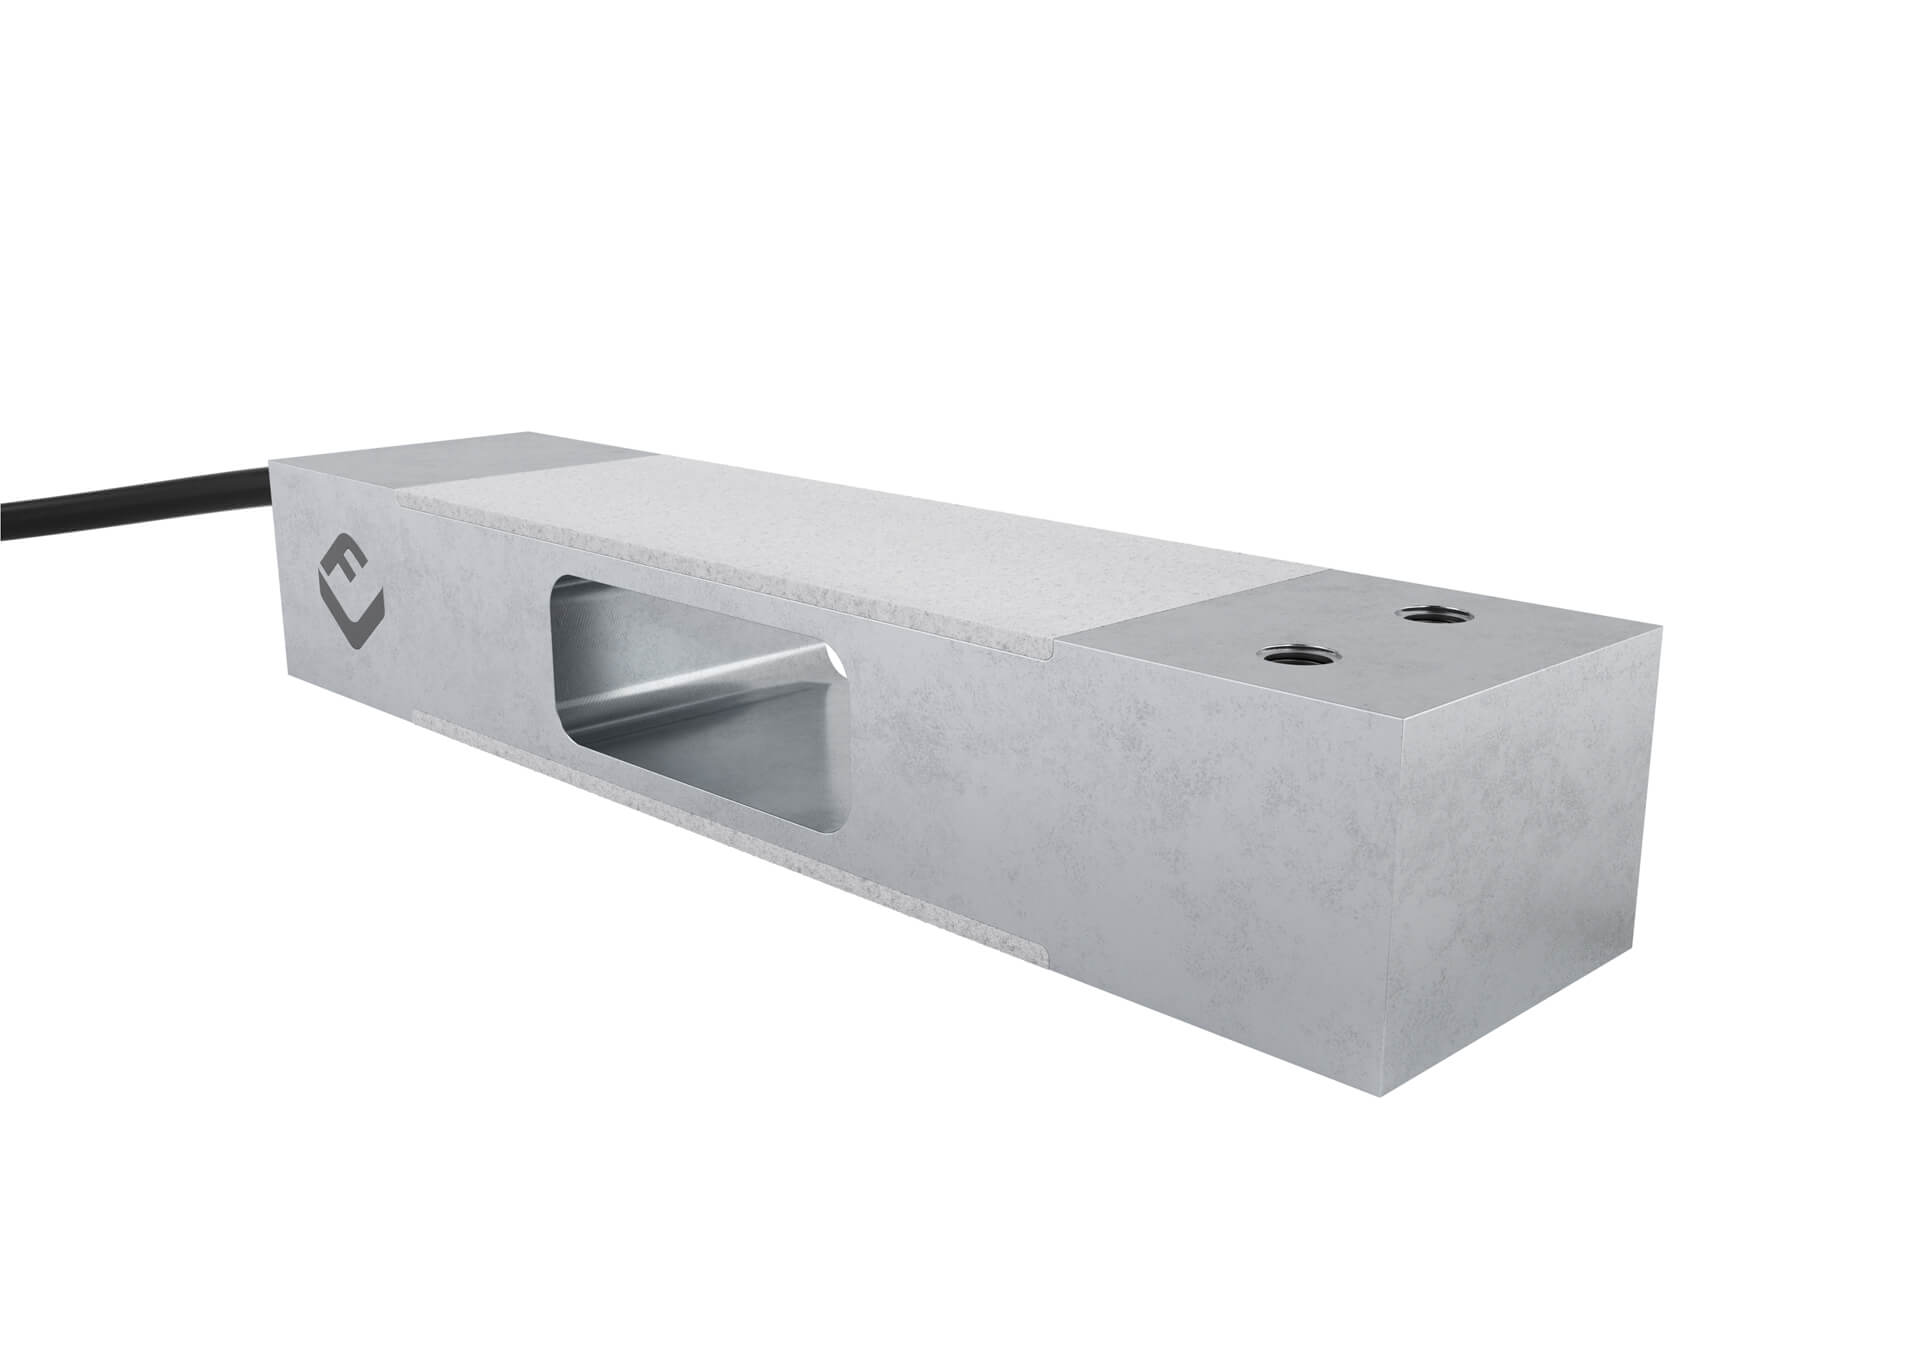 PC22 single point load cell (5 - 40kg) Image